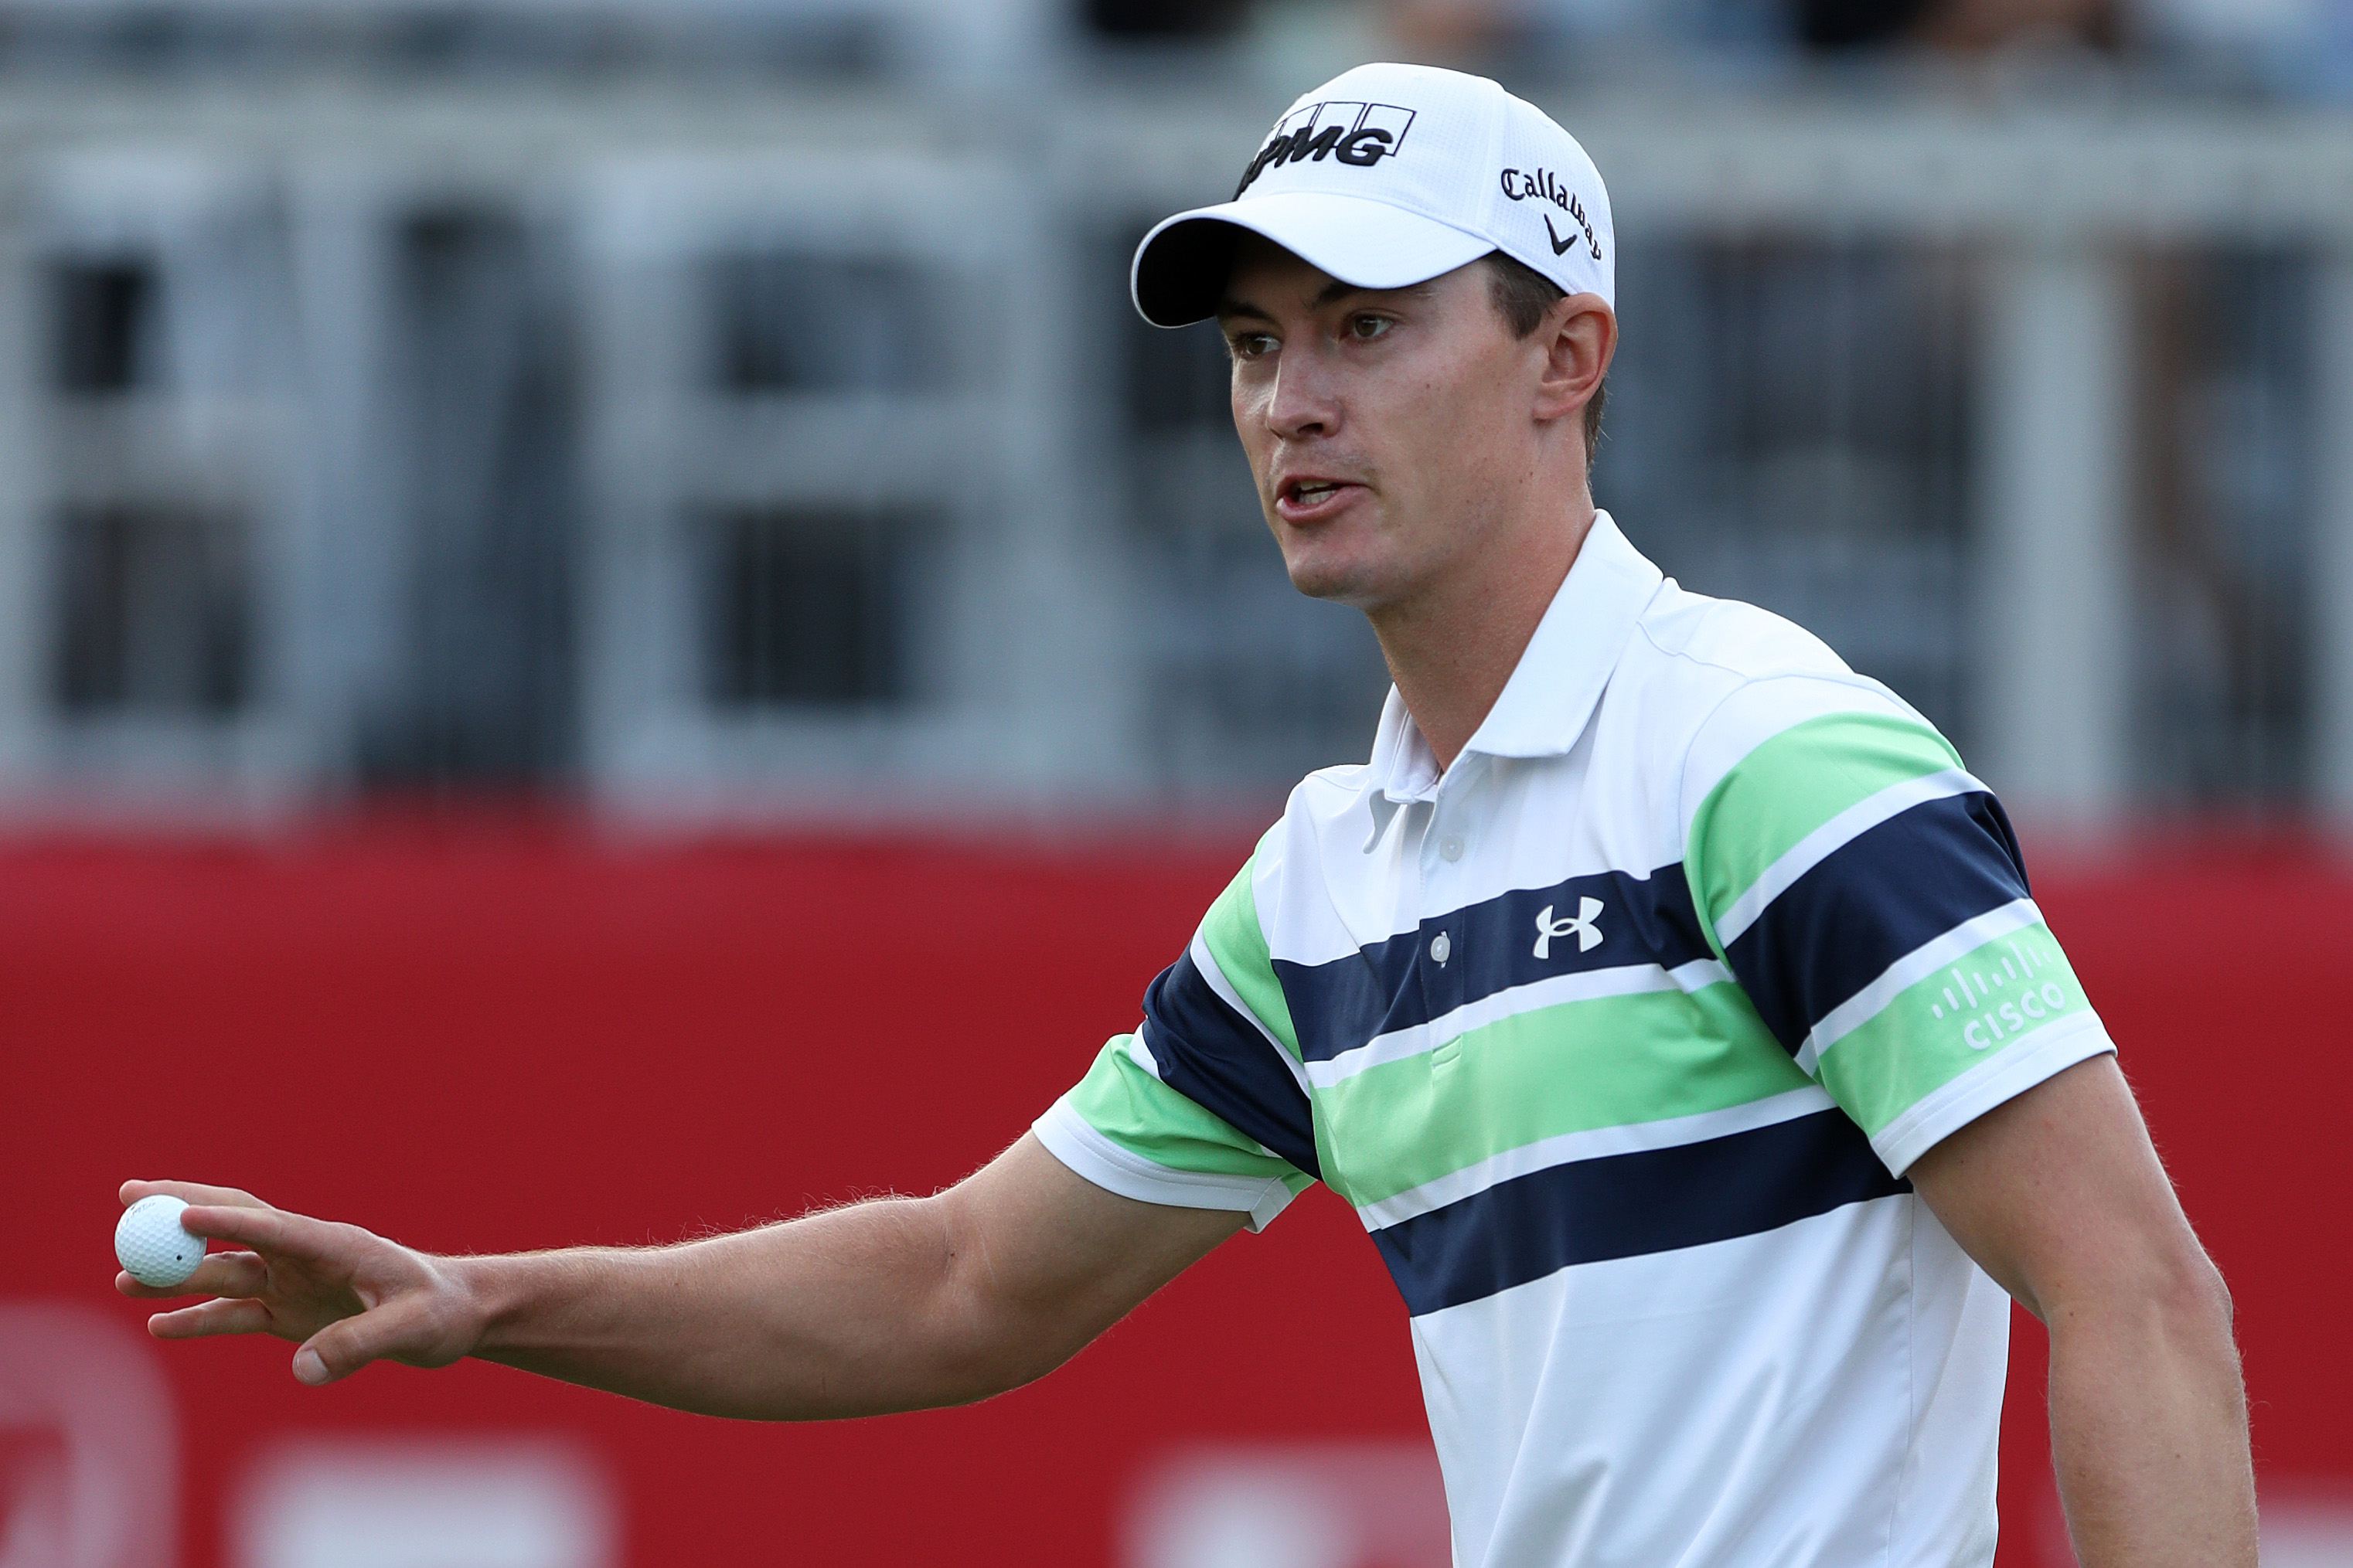 Maverick McNealy reacts following round three of the Fortinet Championship at Silverado Resort and Spa on September 18, 2021 in Napa, California.